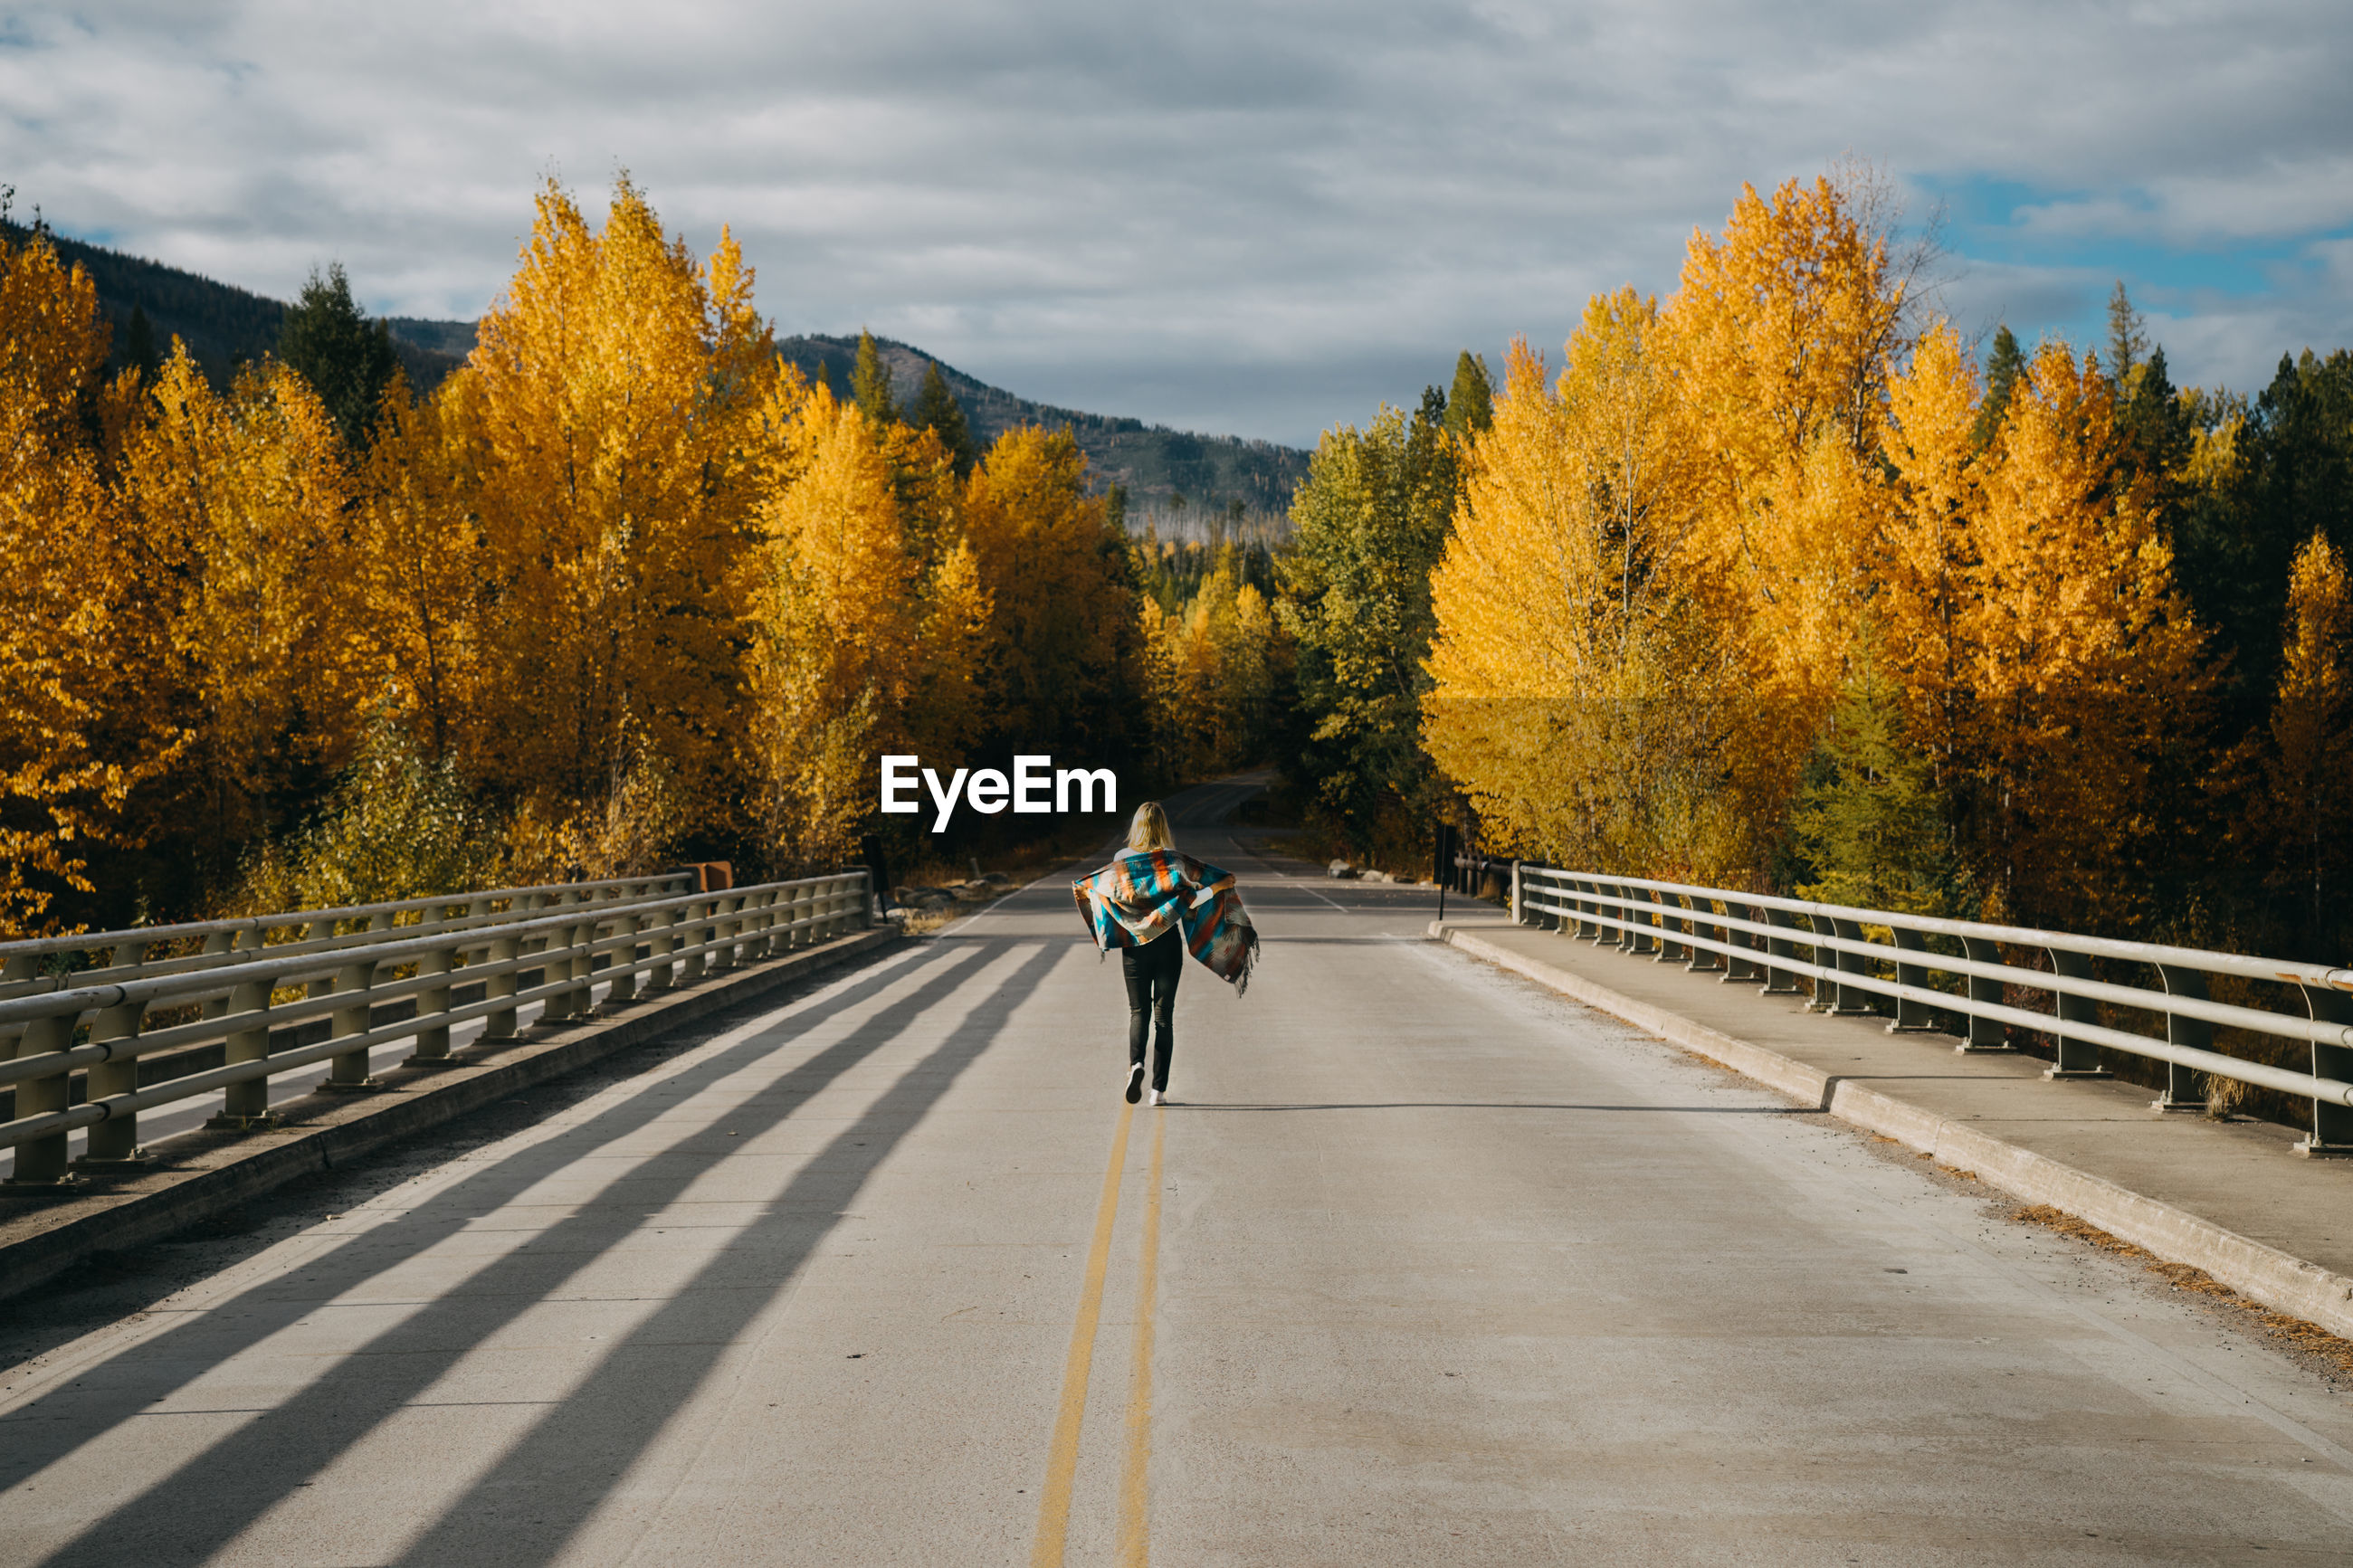 Rear view of woman walking on road against trees and sky during autumn